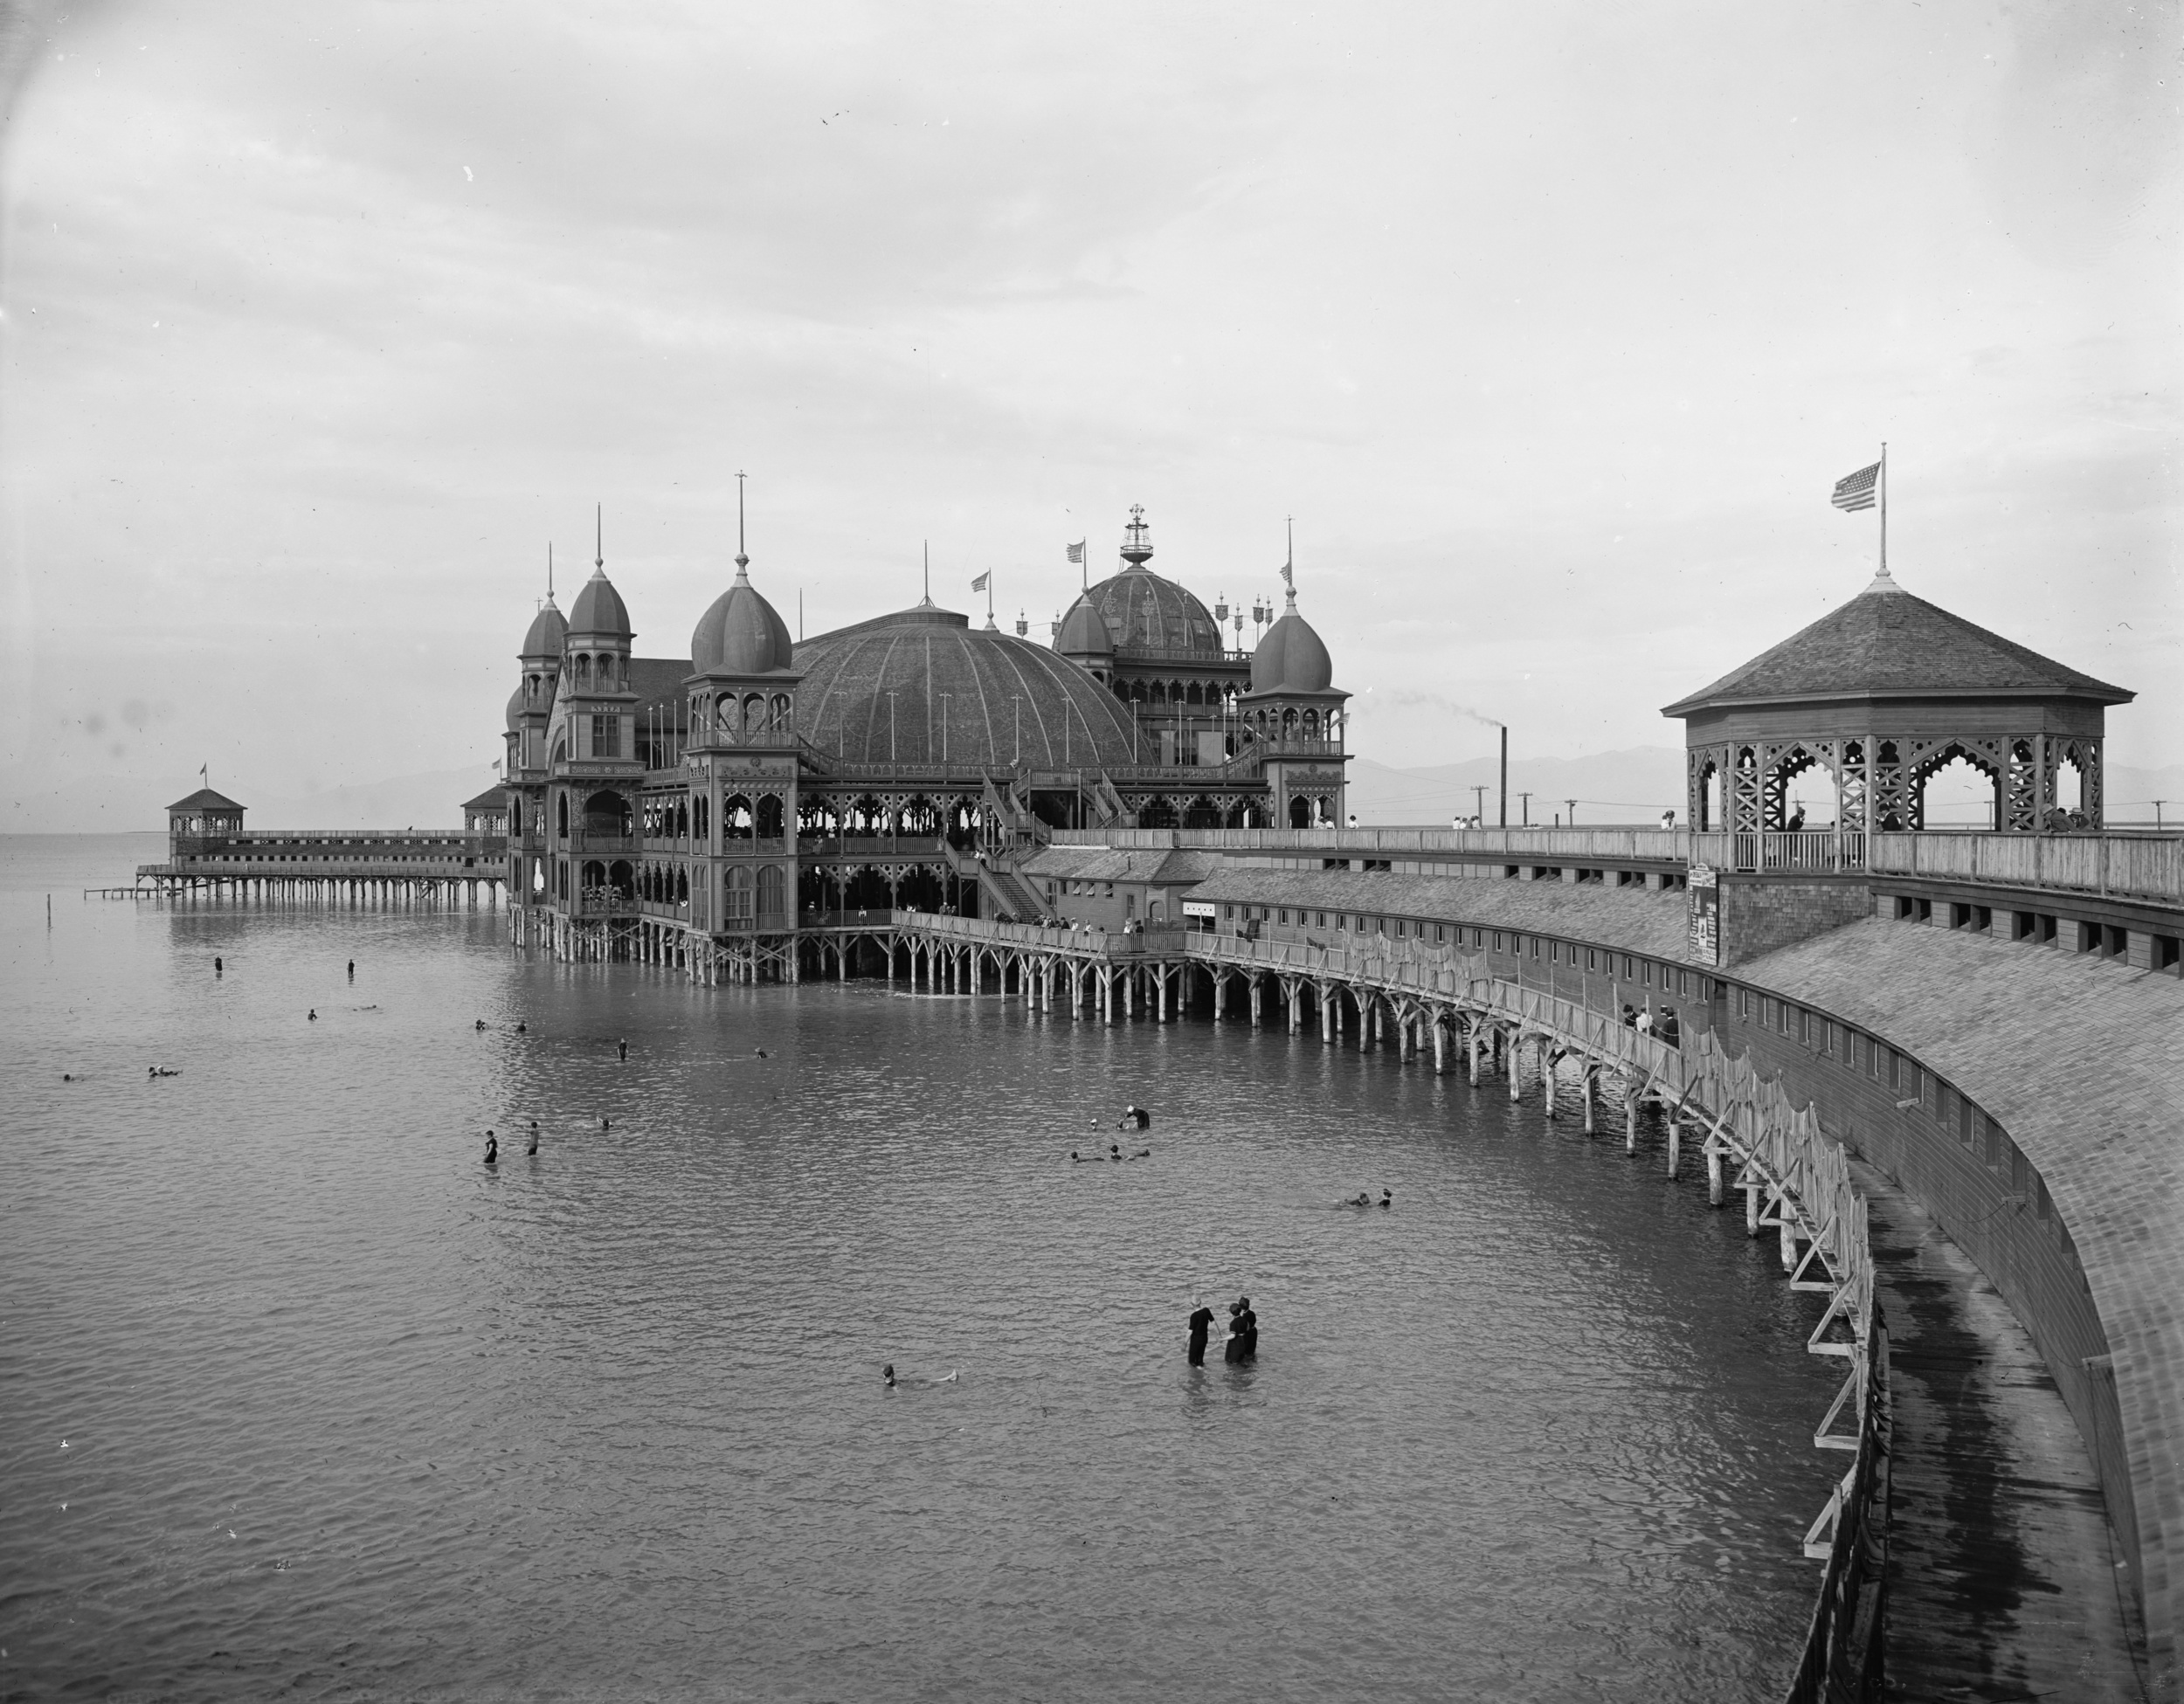 Detroit_Publishing_-_Salt_Air_-i.e._Saltair-_Pavilion,_Great_Salt_Lake,_Utah.jpg